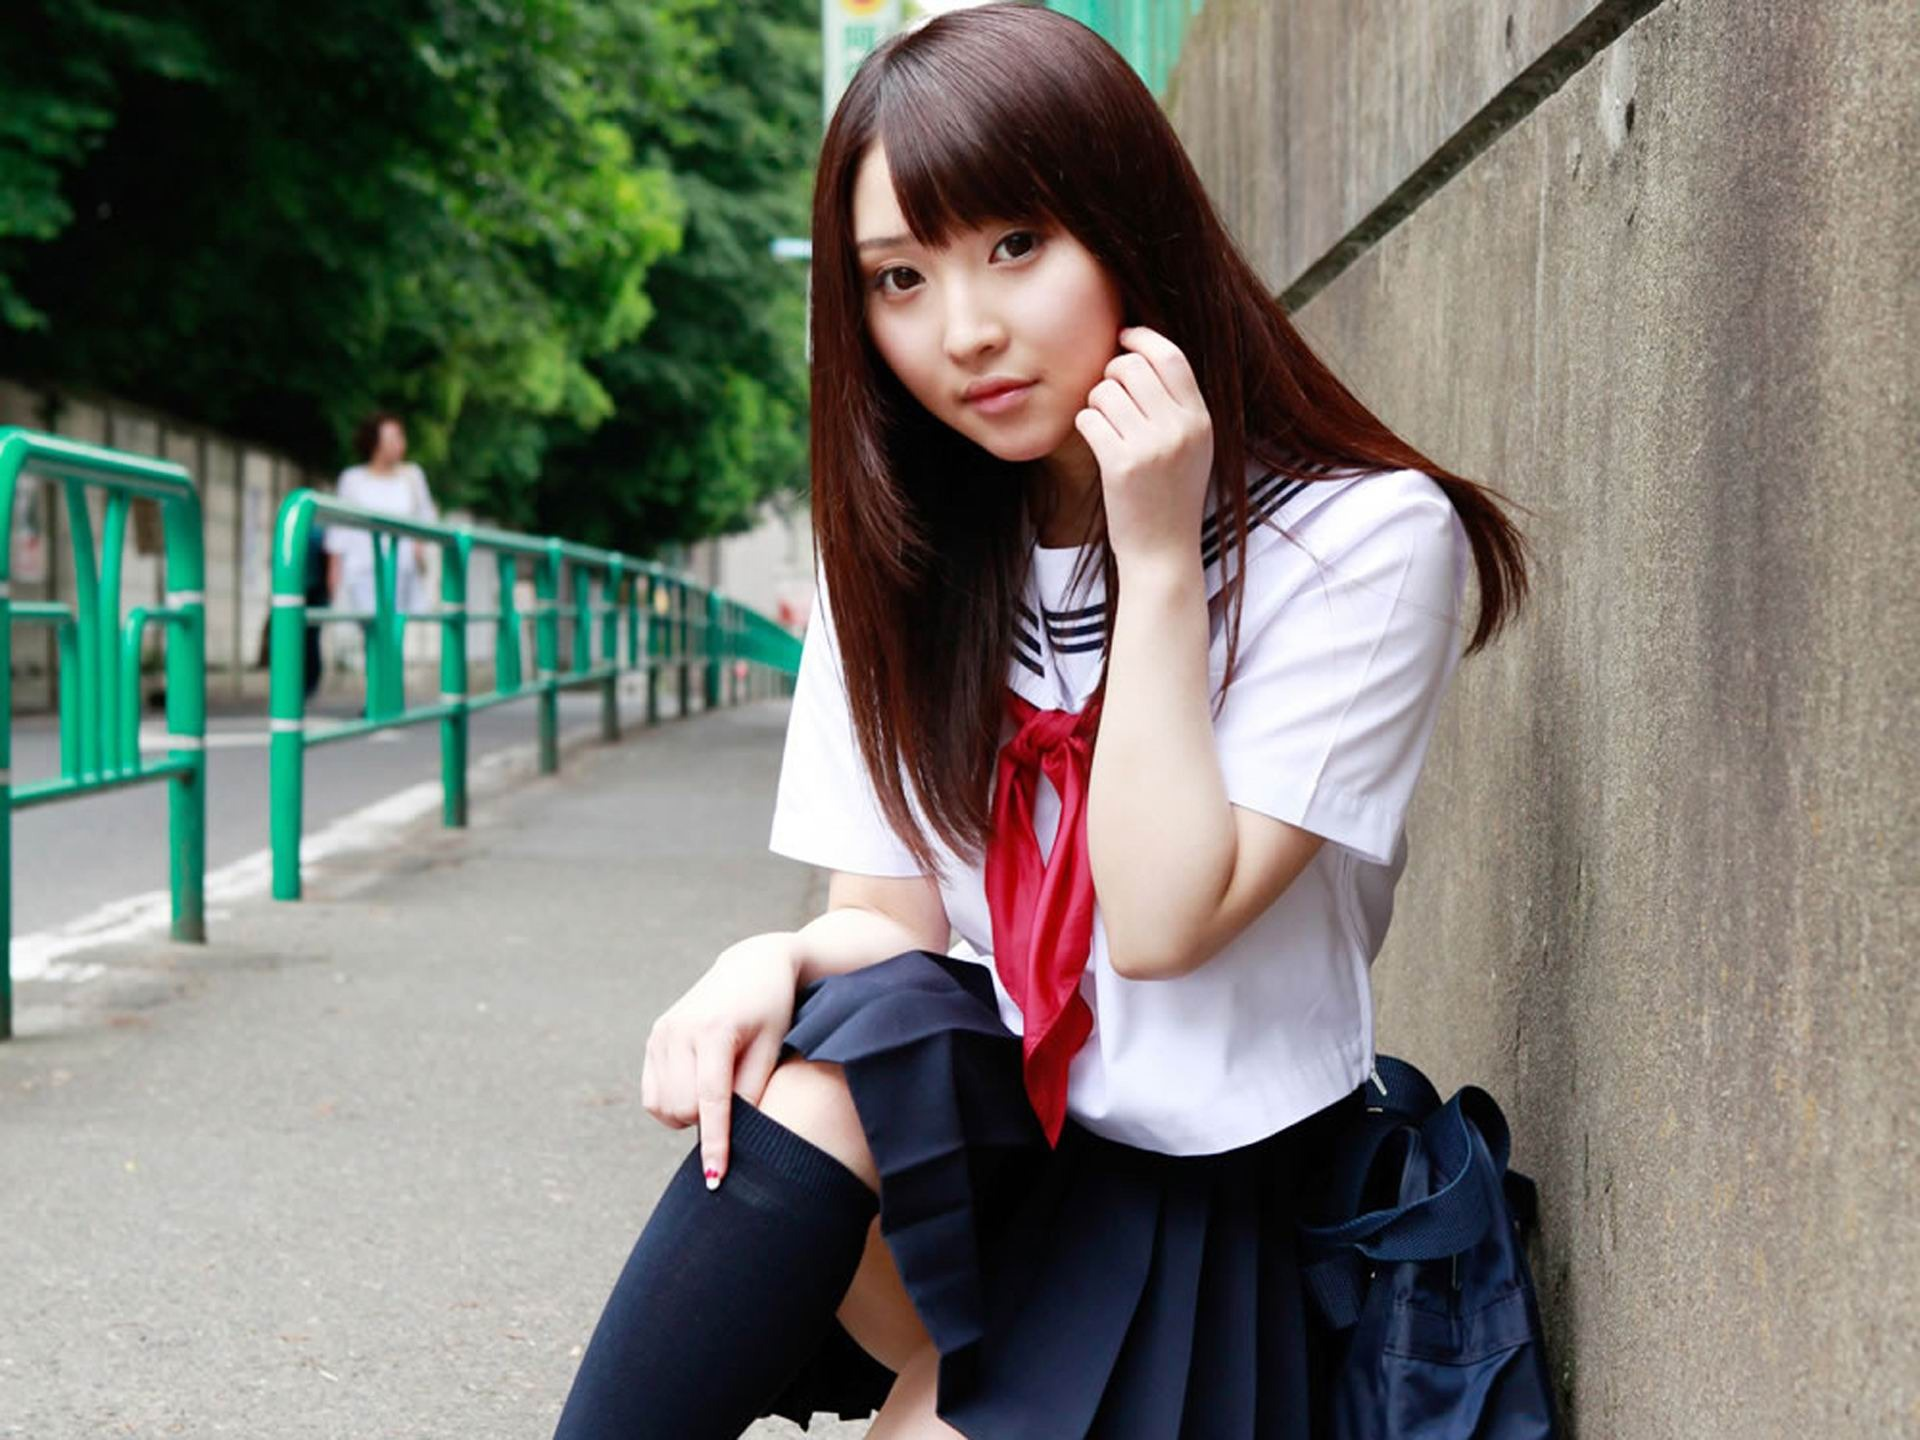 Pure japanese school girl with the beat on the streets wallpaper 11 preview - Asian schoolgirl wallpaper ...